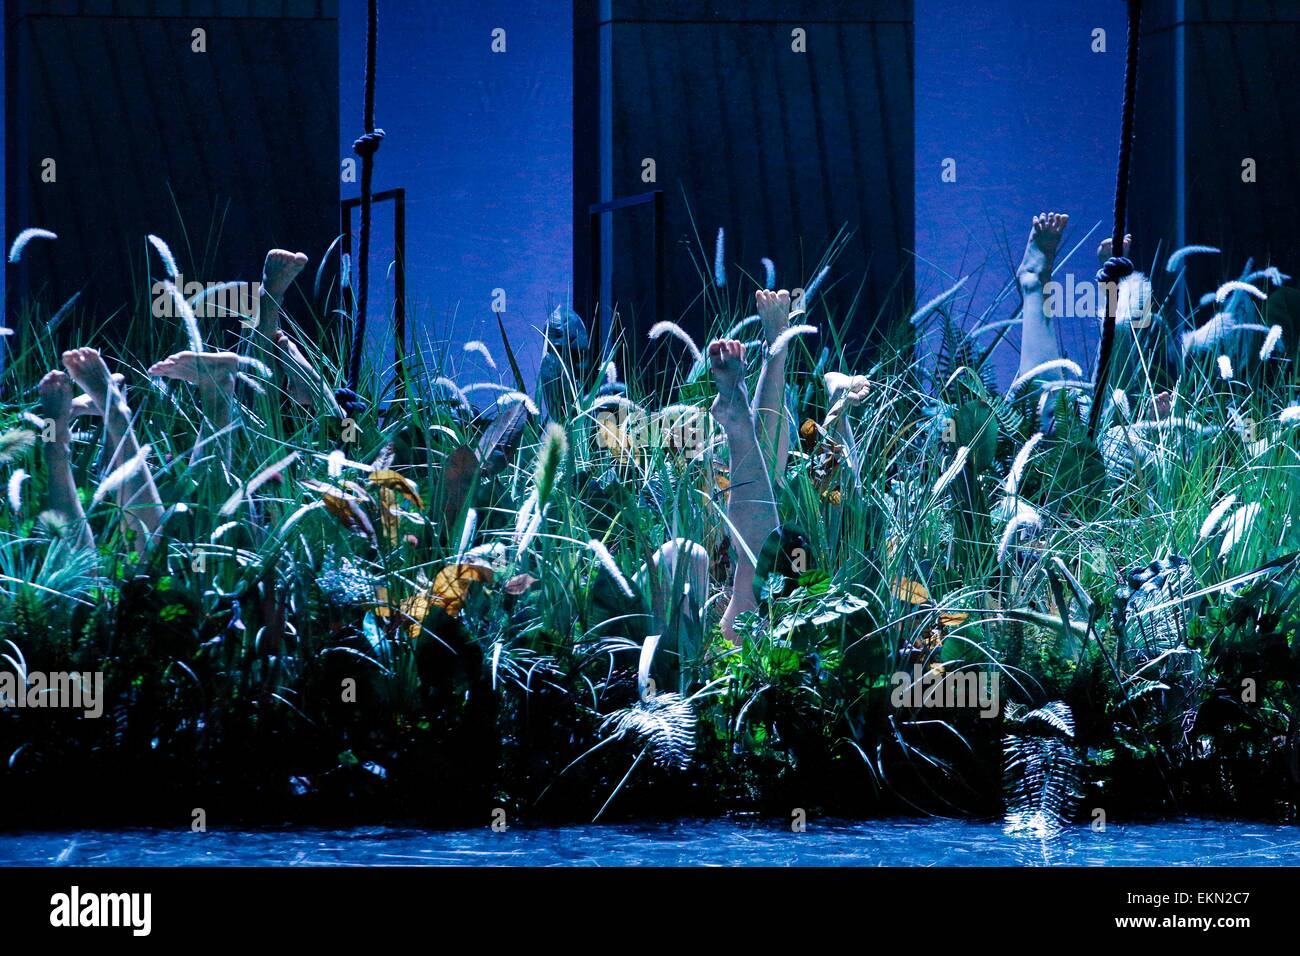 Leipzig, Germany. 7th April 2015, Dancers performing in the grass on stage in the final dress rehearsal of Richard Stock Photo